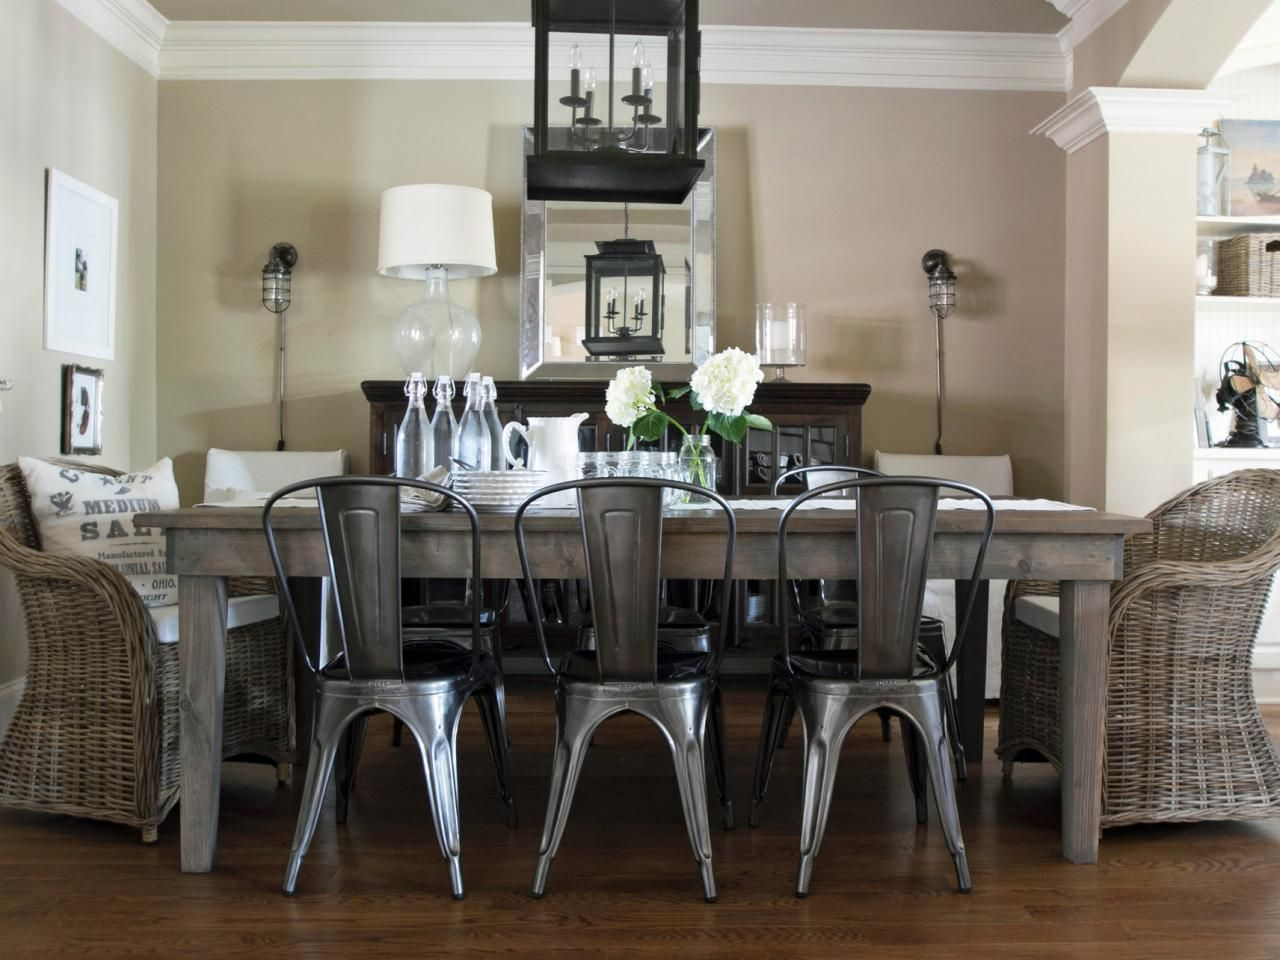 Kijiji Sofa Cornwall Mixing Dining Room Chair Styles Bepg Lifestyle Blogs Metal